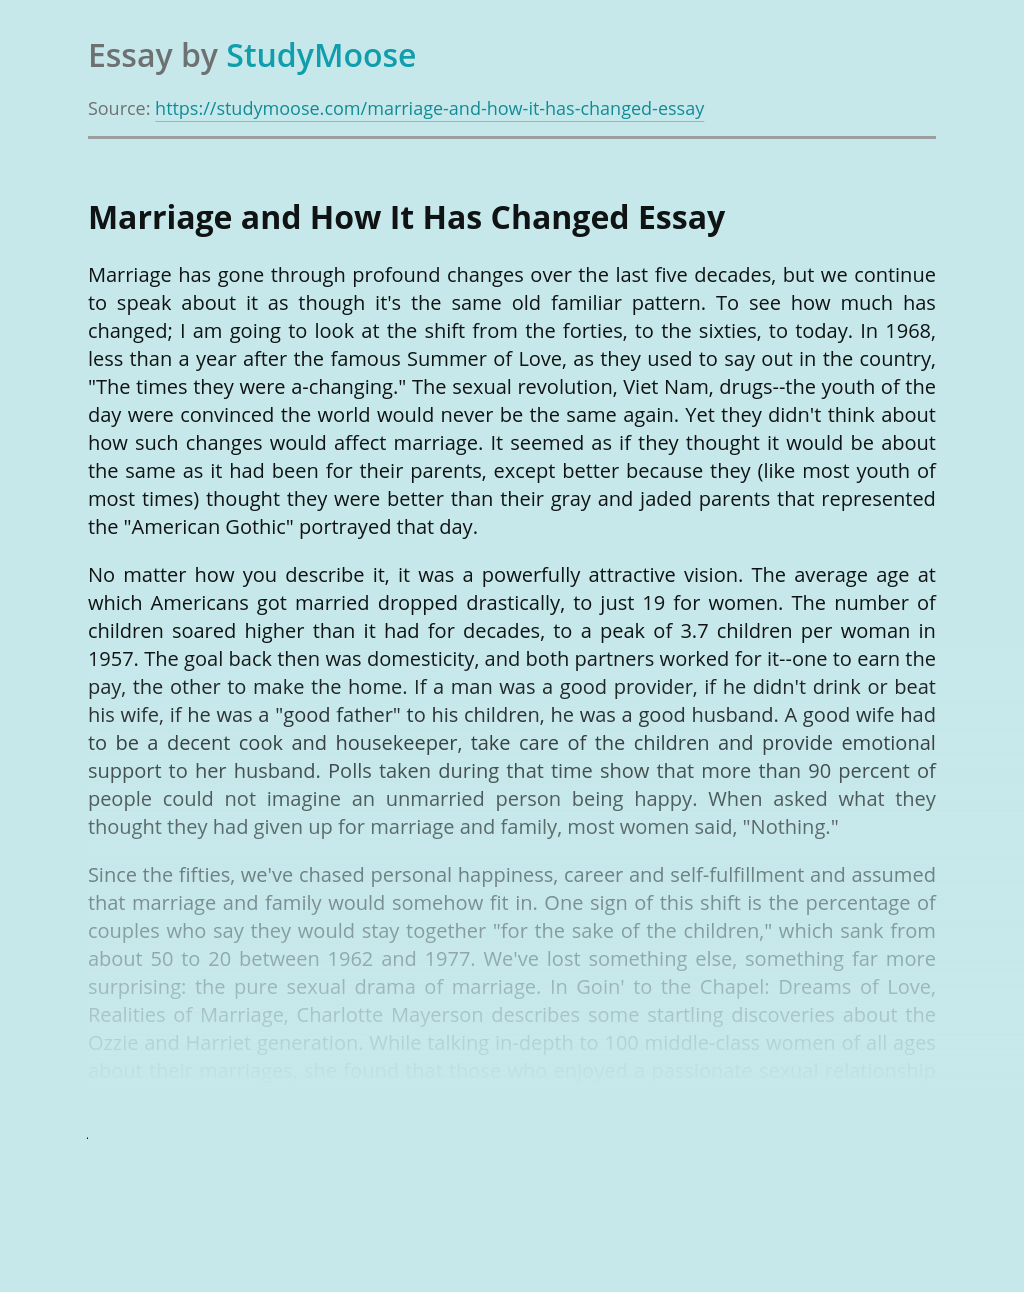 Marriage and How It Has Changed